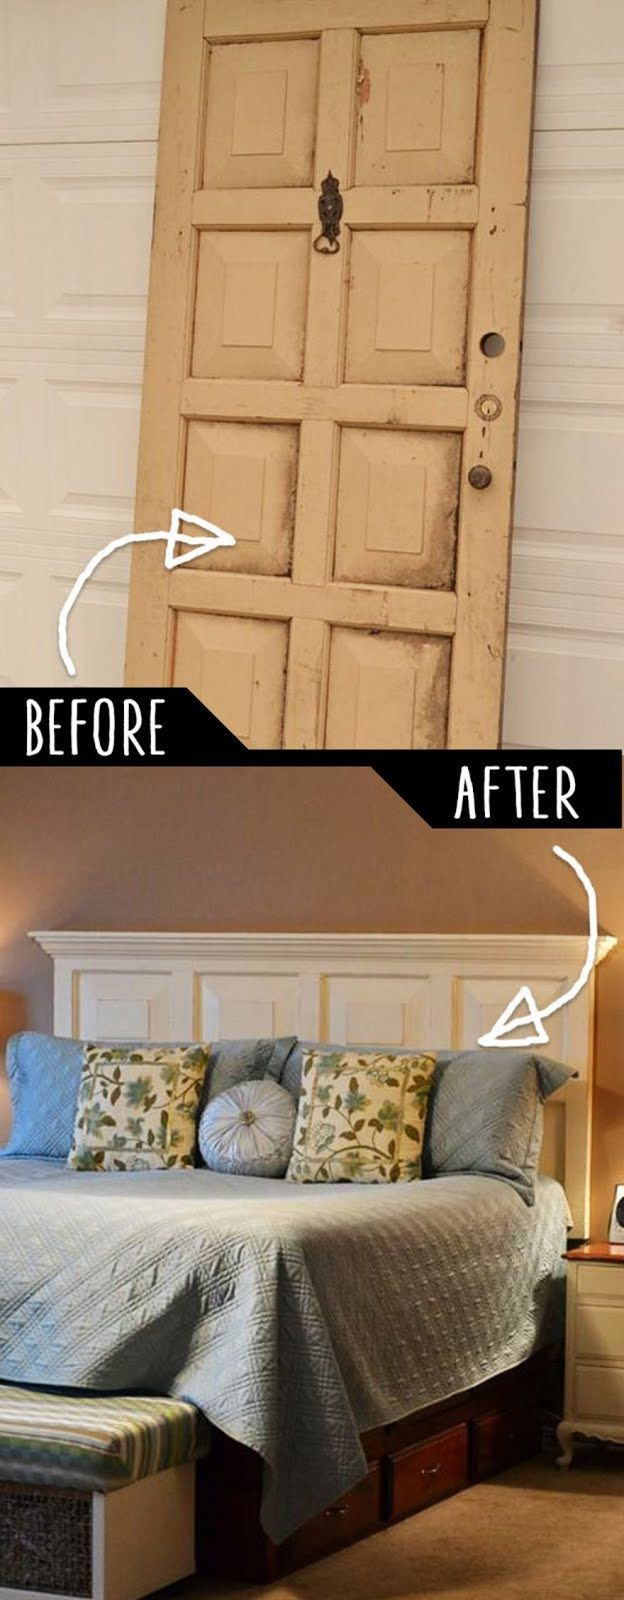 17 Super Clever Ways to Upcycle Old Furniture - HANDY DIY | Reuse ...